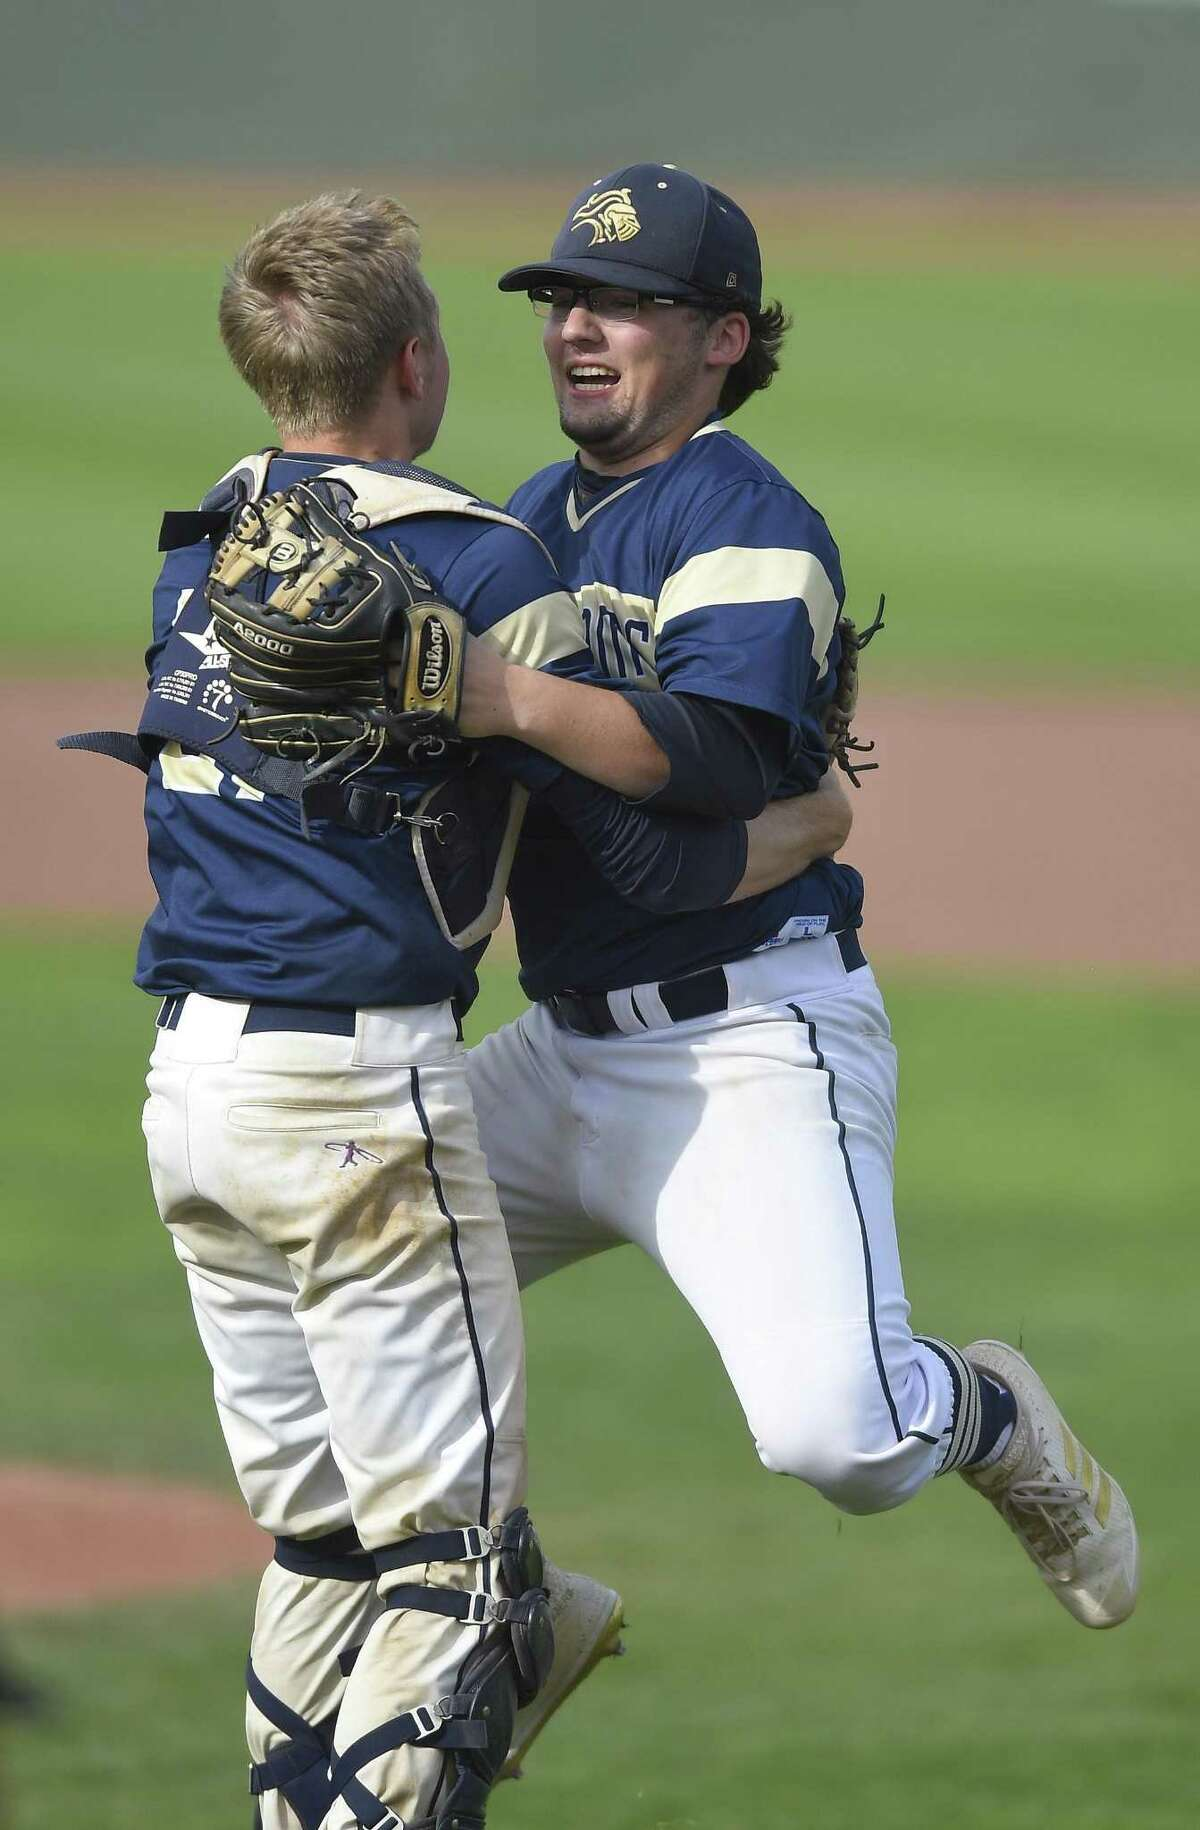 Notre Dame-Fairfield pitcher Dillon Higgins (2) leaps into the arms of catcher Jacob Rainey (21) after delivering the game winning strike out in the seventh inning Coventry's Nik Freschlin (27) in the CIAC Class S baseball finals at Palmer Field Stadium on June 9, 2018 in Middletown, Connecticut. Notre Dame-Fairfield defeated Coventry 10-6.